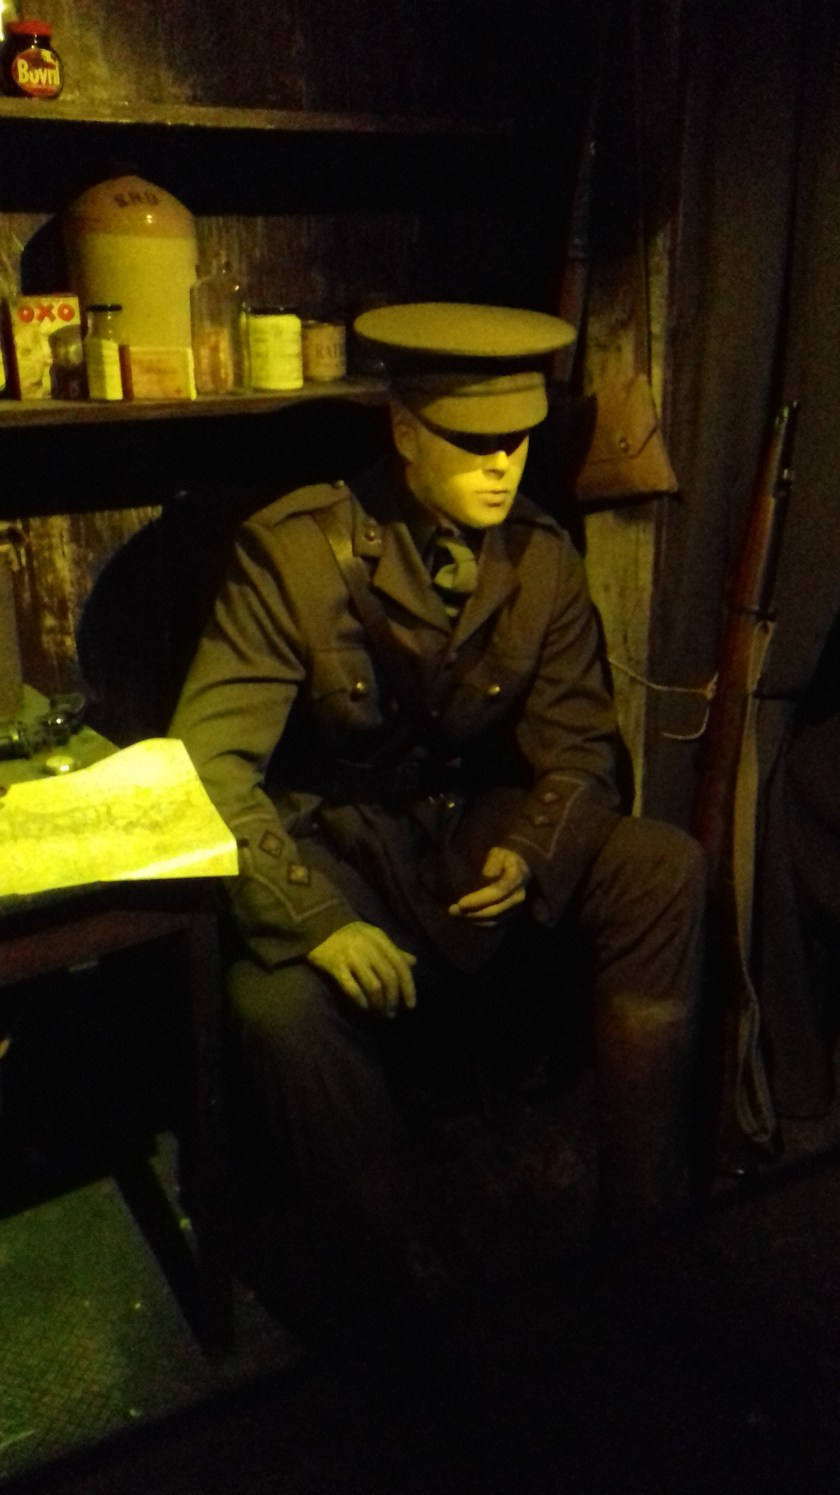 The photo shows a soldier sitting in a trench